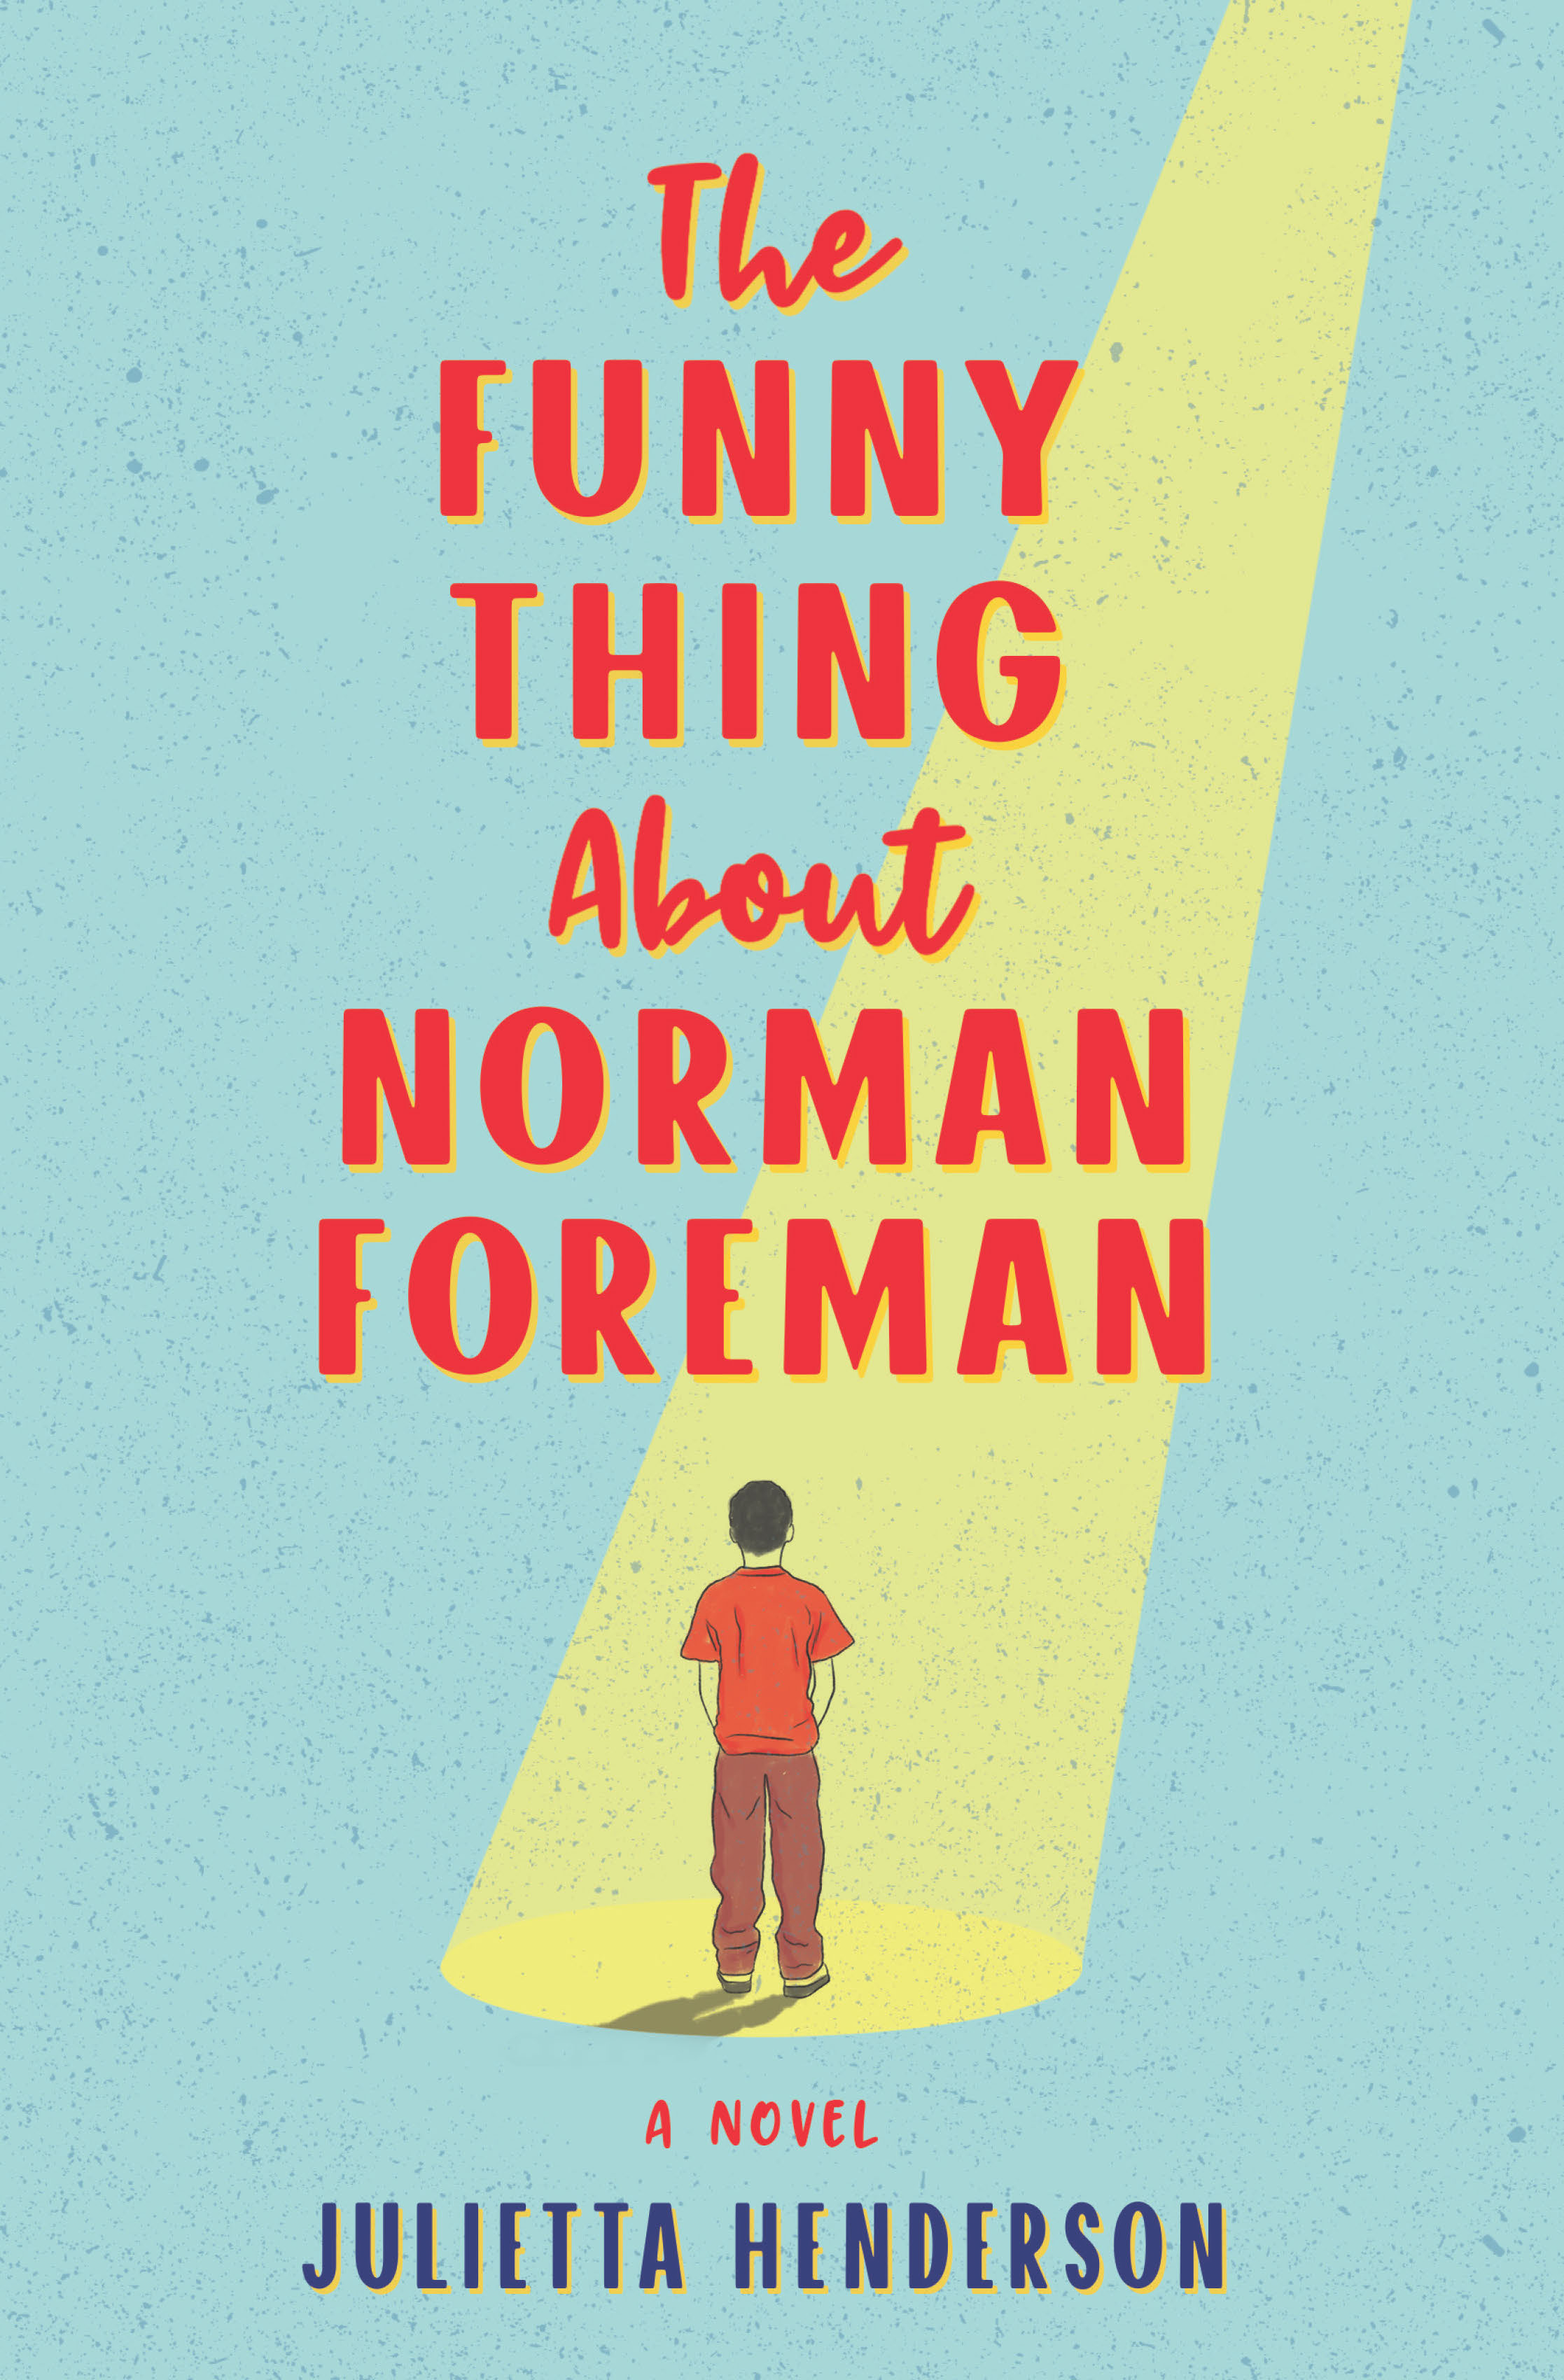 THE FUNNY THING ABOUT NORMAN FOREMAN - JHenderson